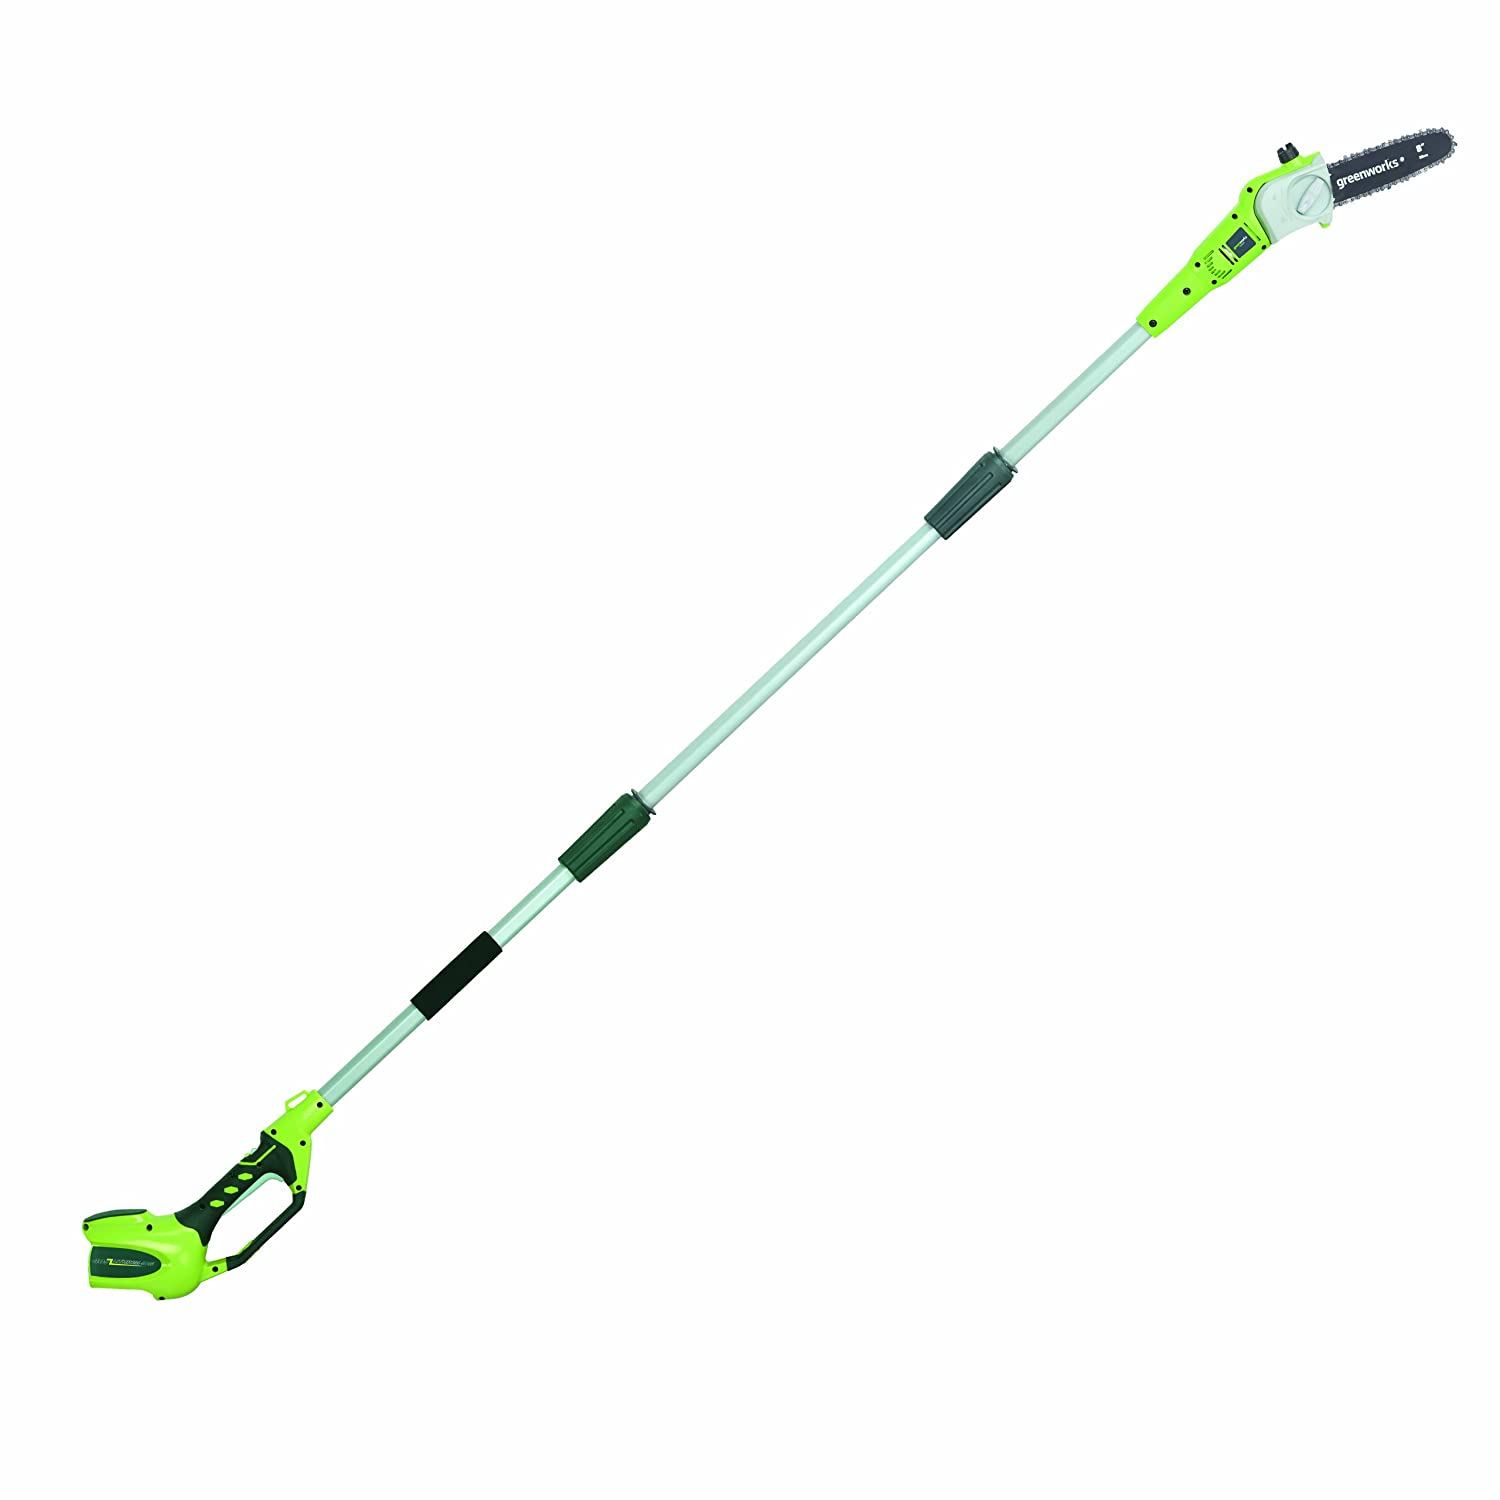 Greenworks 8.5 40V Cordless Pole Saw, Battery Not Included 20302